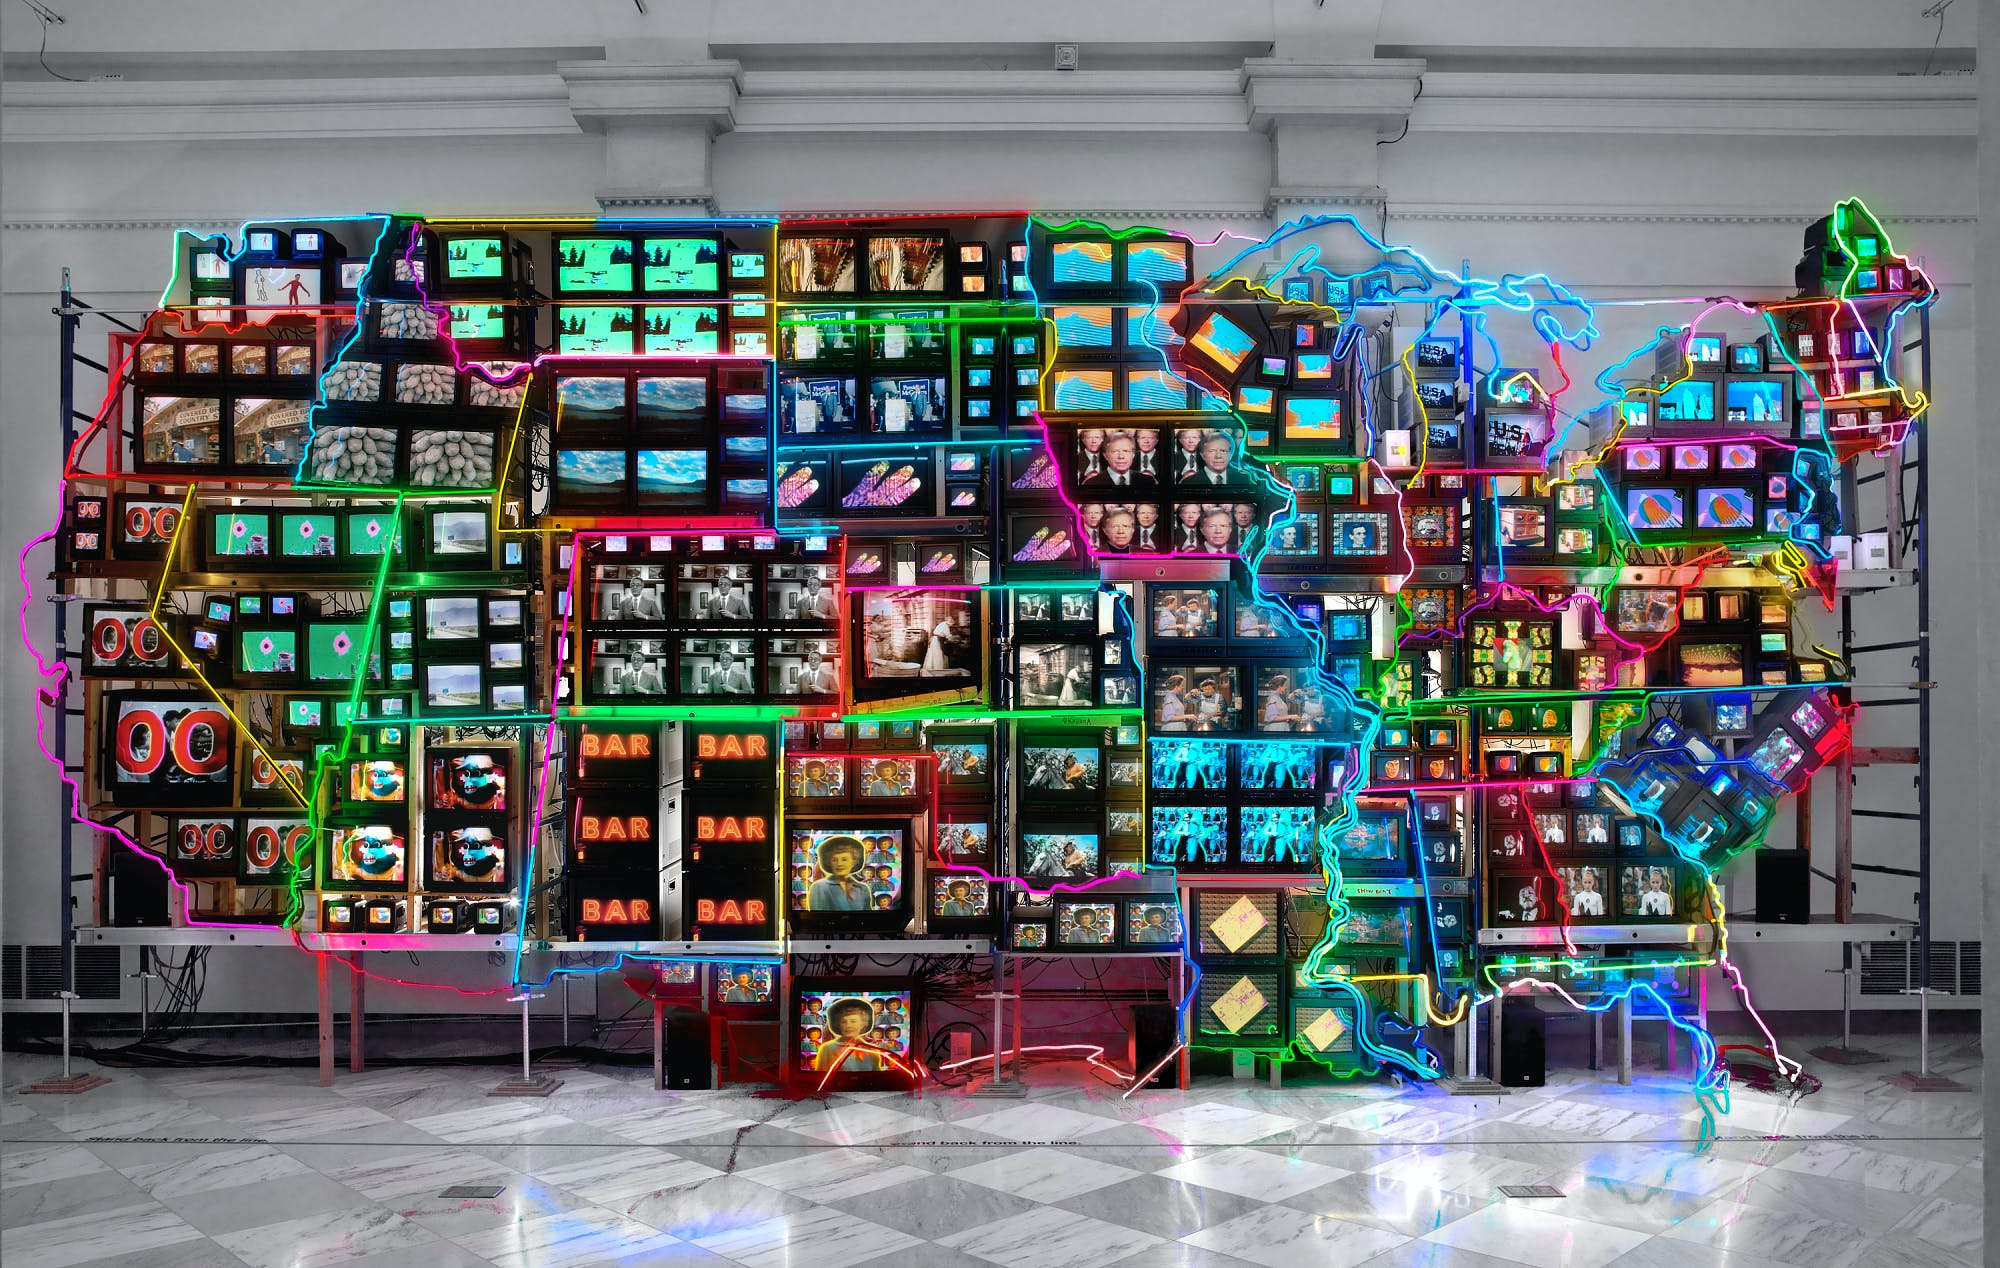 "<p><em>Nam June Paik, Electronic Superhighway: Continental U.S., Alaska, Hawaii, 1995, Smithsonian American Art Museum, &copy; Nam June Paik Estate, Gift of the artist, 2002.23. Data Source: <a href=""https://americanart.si.edu/artwork/electronic-superhighway-continental-us-alaska-hawaii-71478"" rel=""noopener noreferrer"" target=""_blank"">Smithsonian American Art Museum</a>.</em></p>"